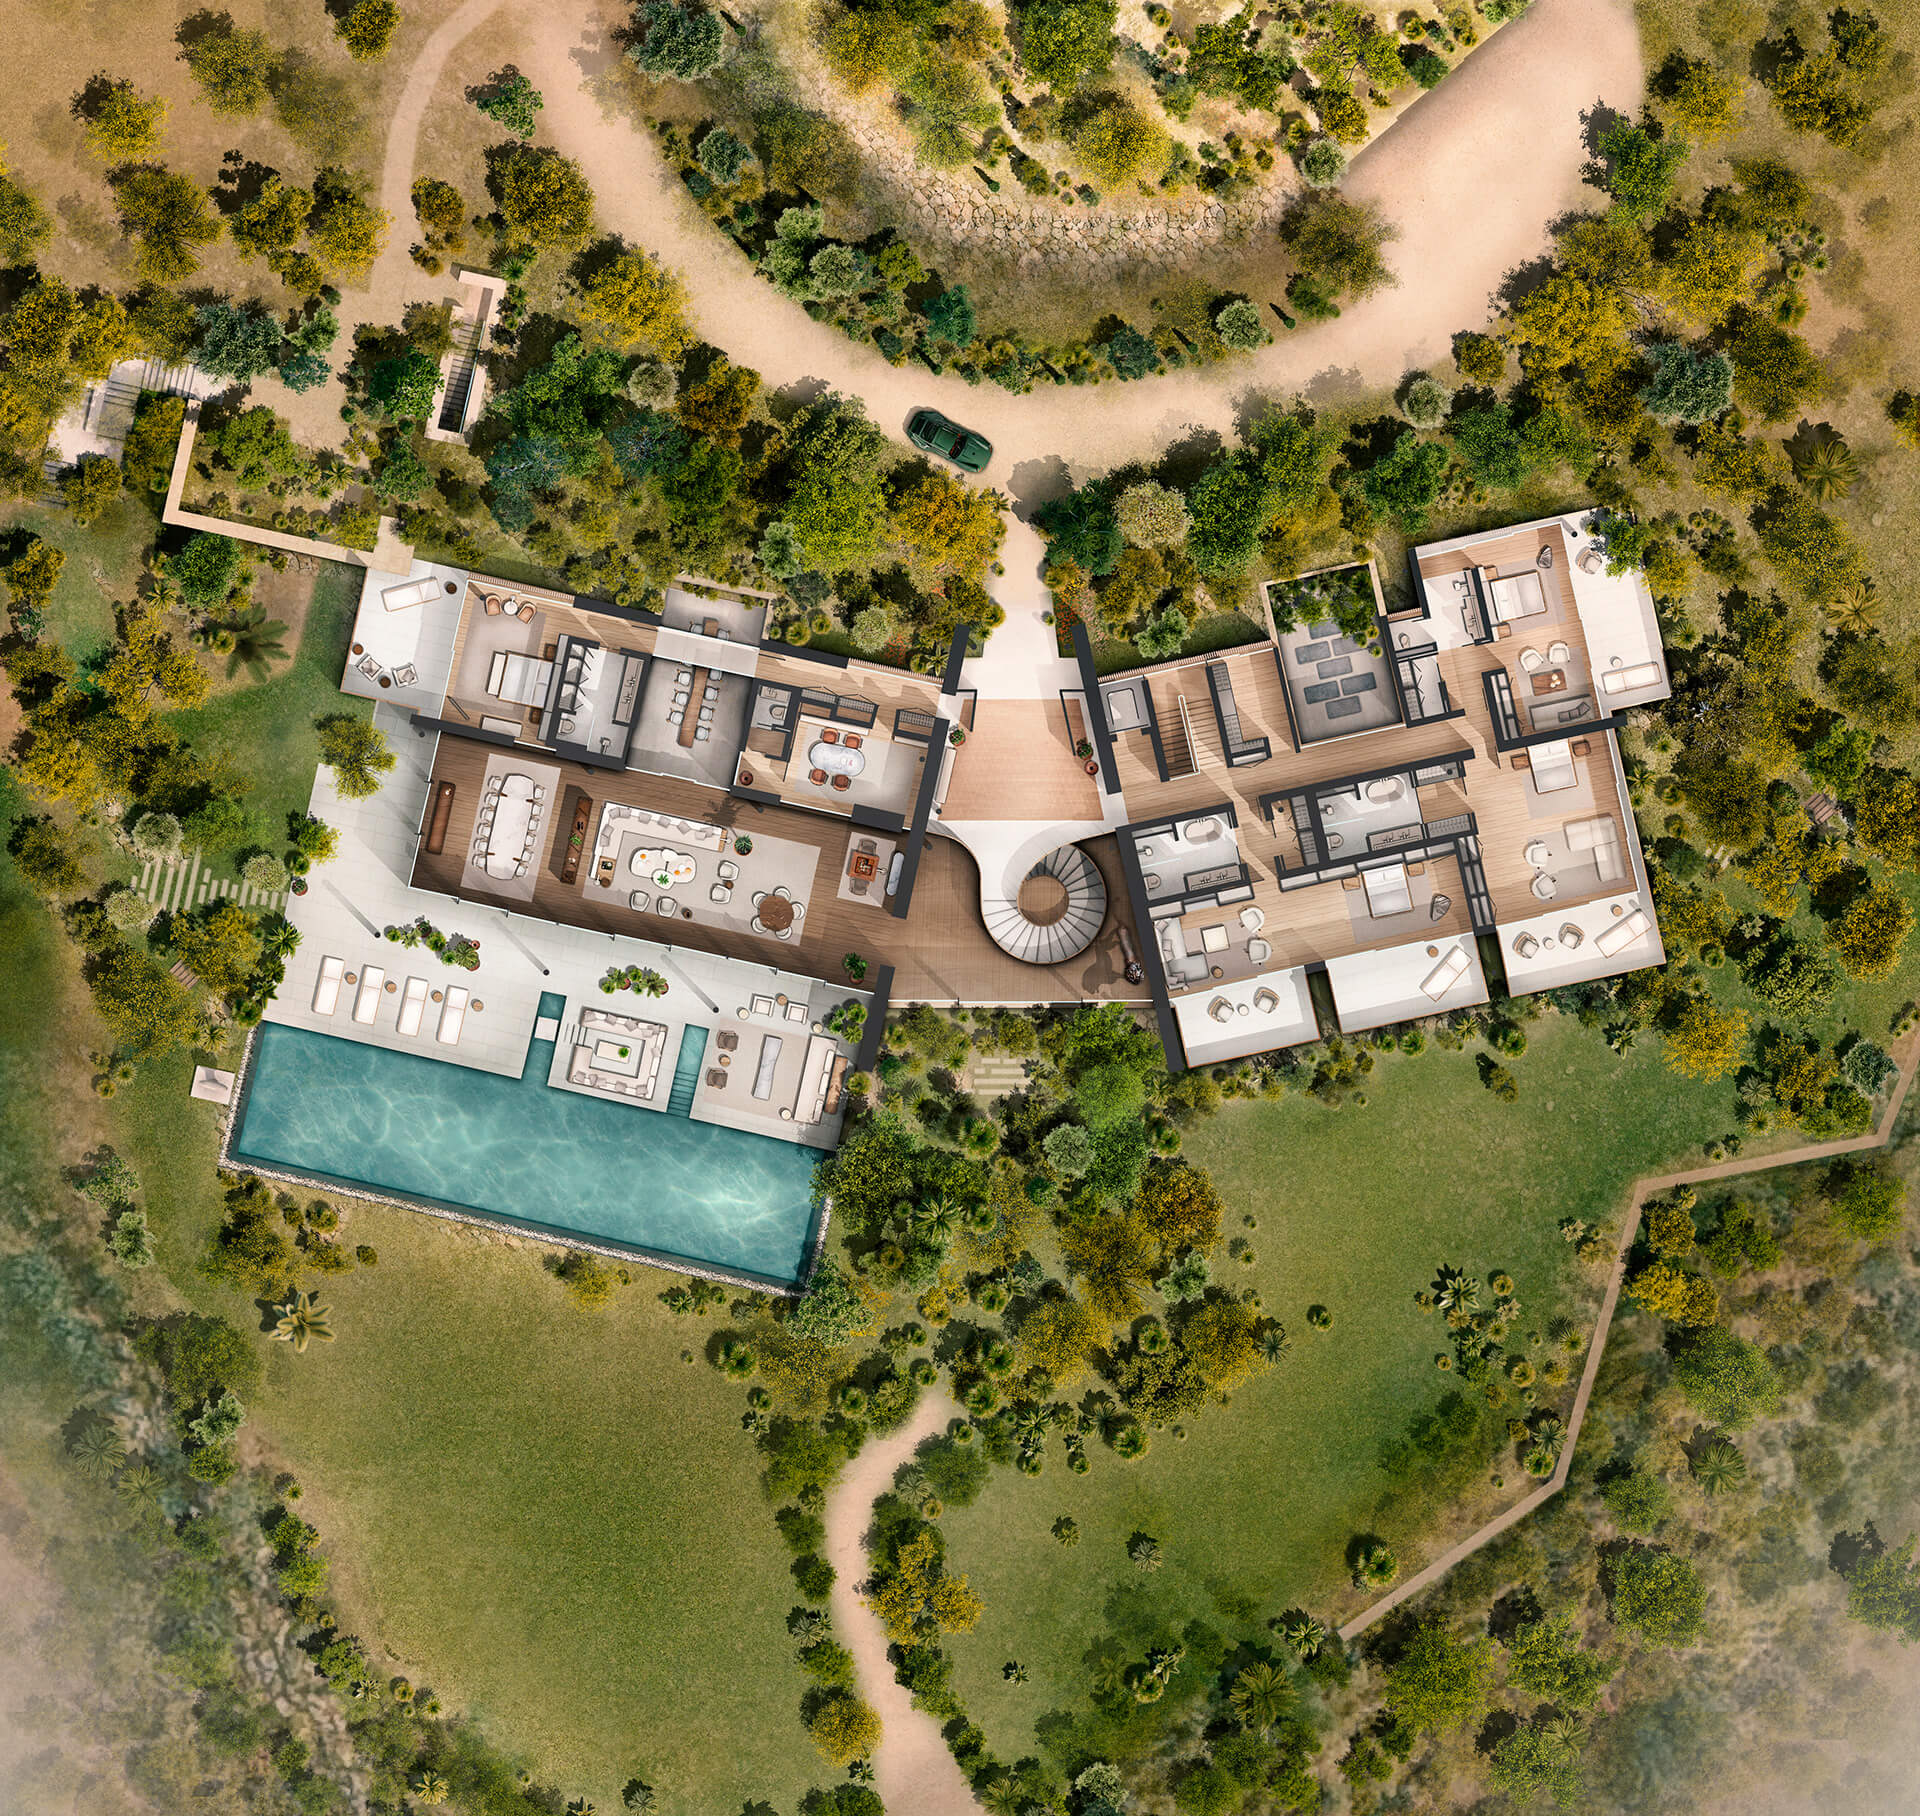 Plan of Dolunay Villa by Foster+ Partners | Dolunay Villa in Mulga | Foster and Partners | STIRworld